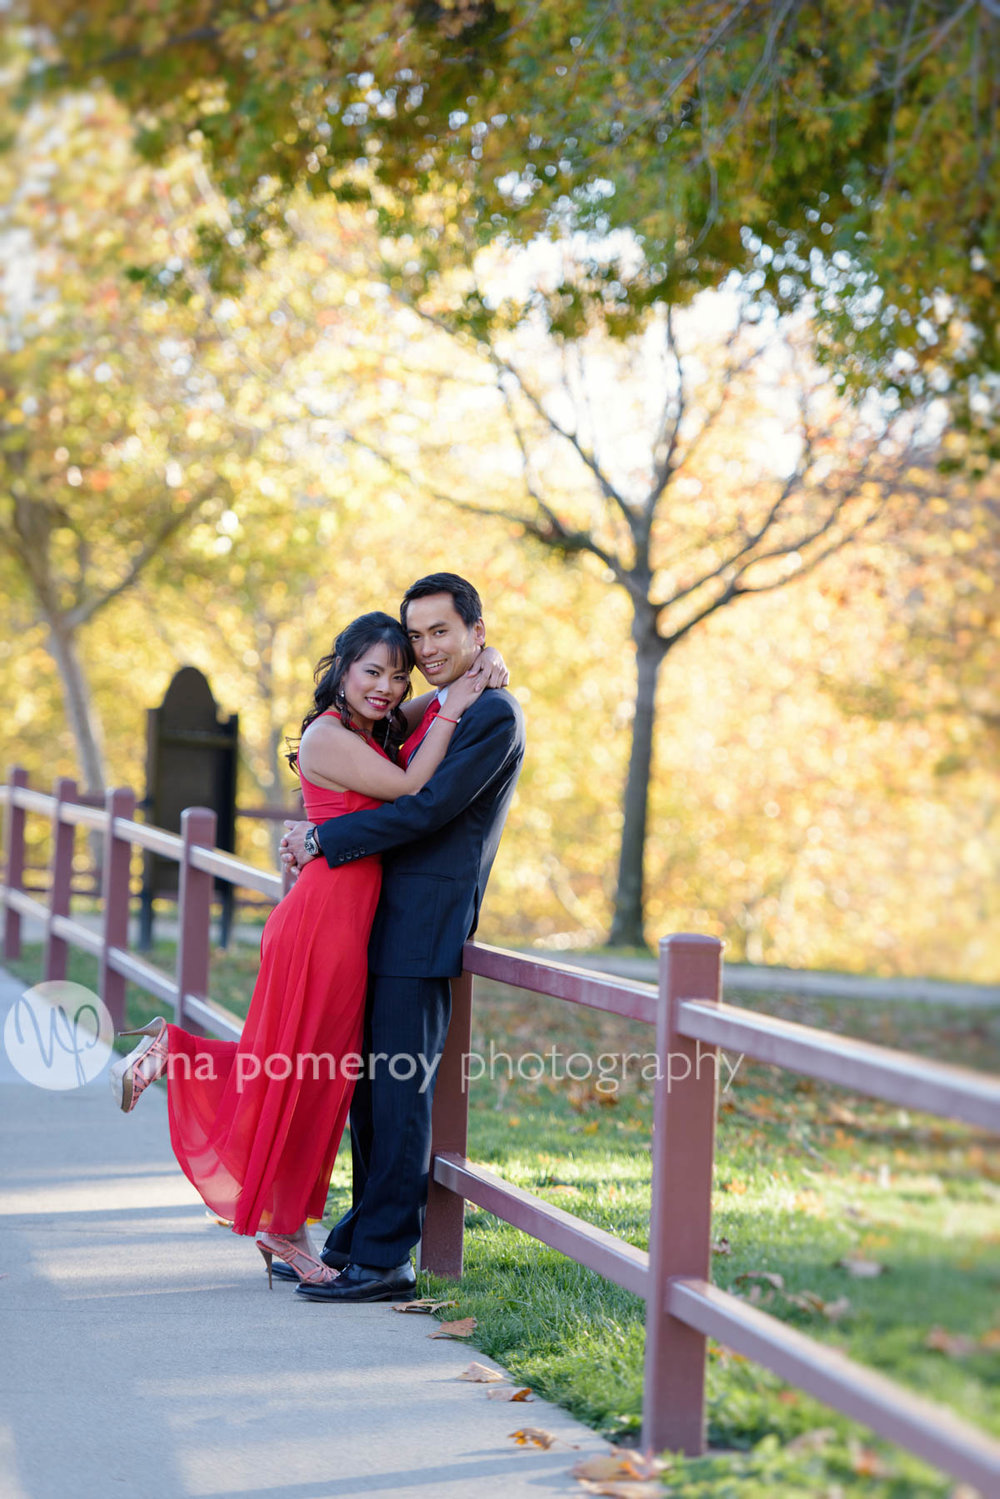 Lifestyle portrait session at local park in Bay Area by Nina Pomeroy Photography